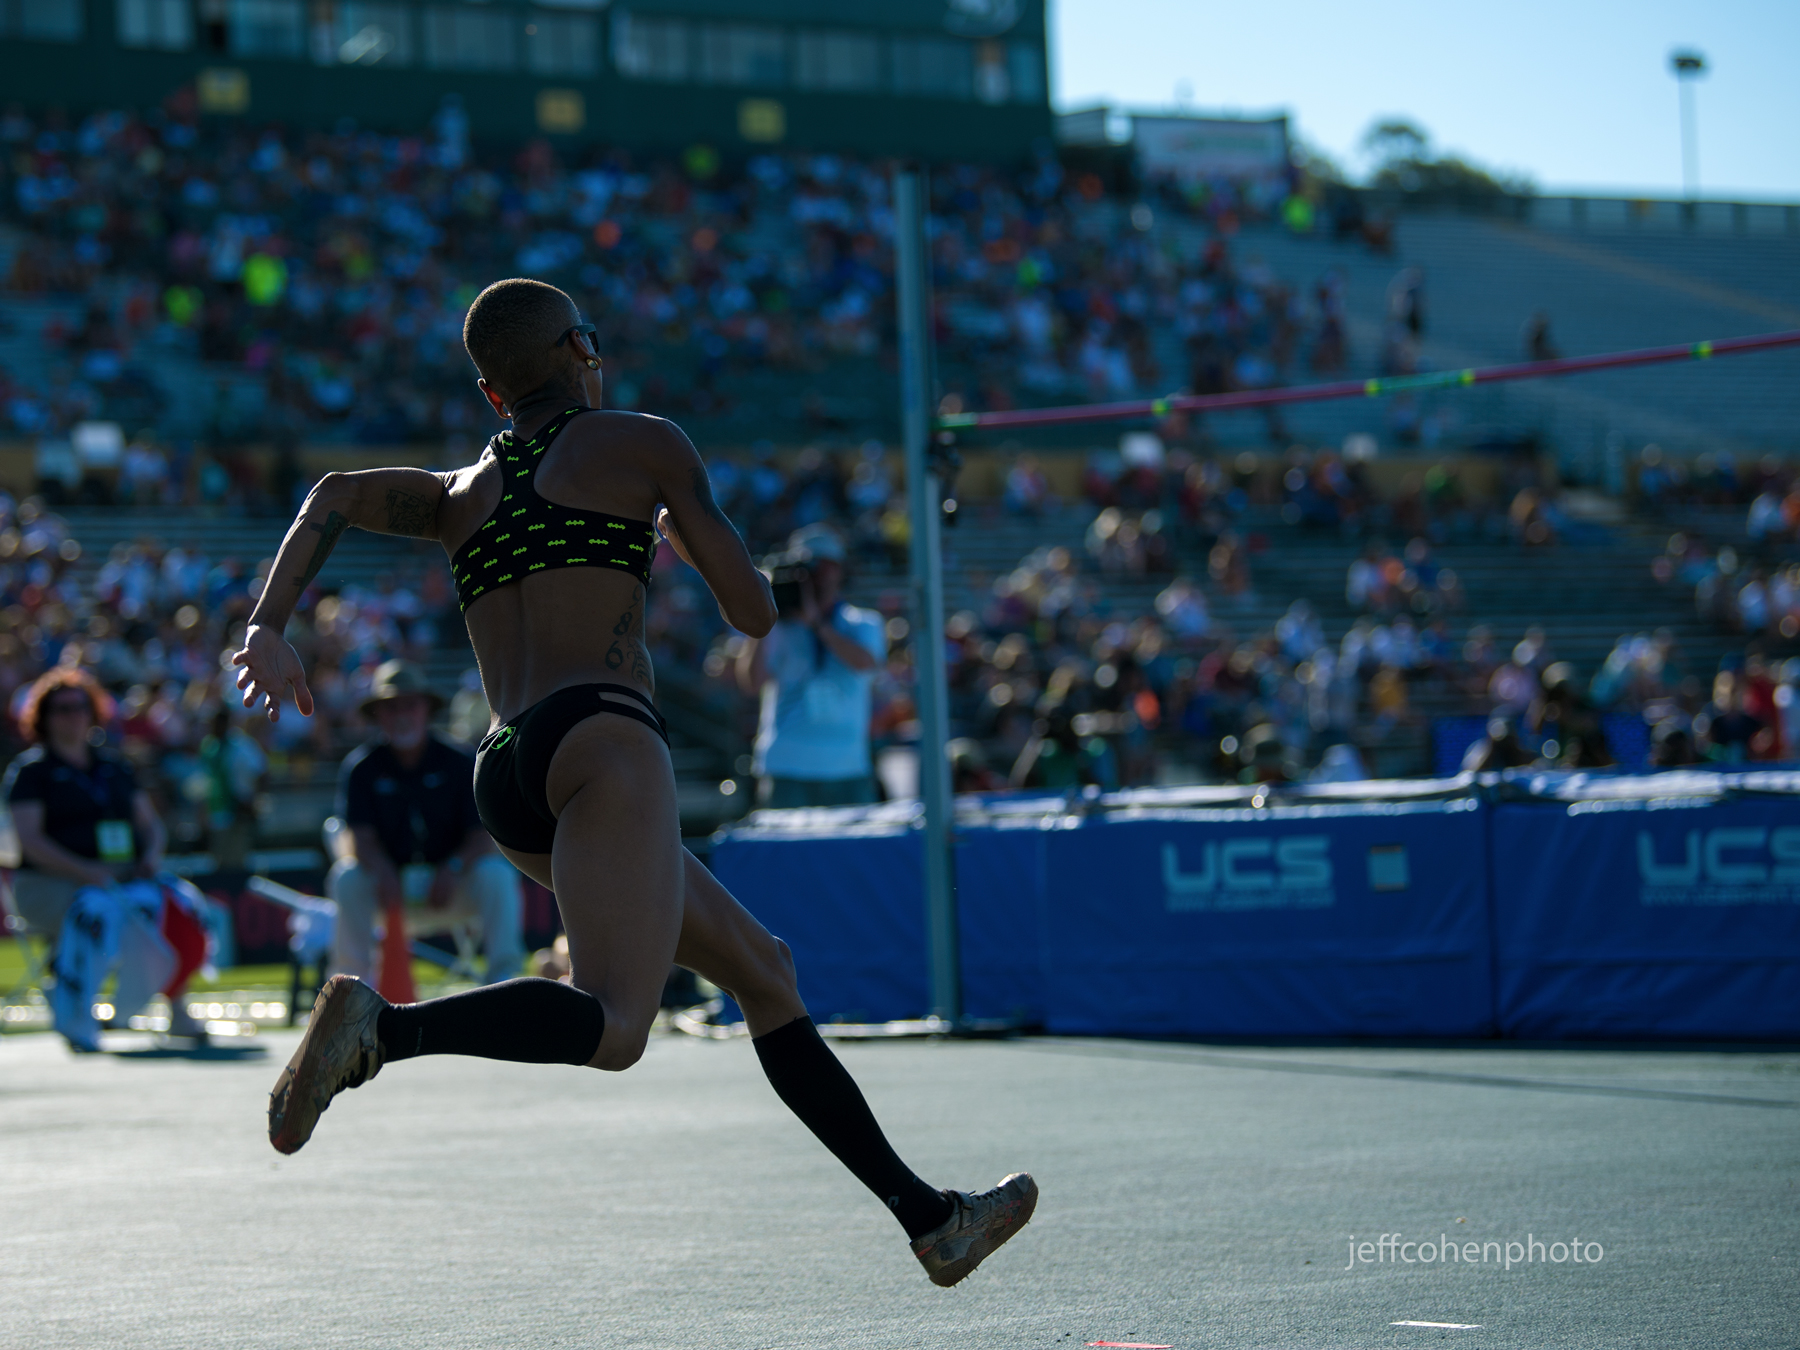 2017-usatf-outdoor-champs-day-2-mcpherson-hjw-stride--jeff-cohen-photo--901-web.jpg